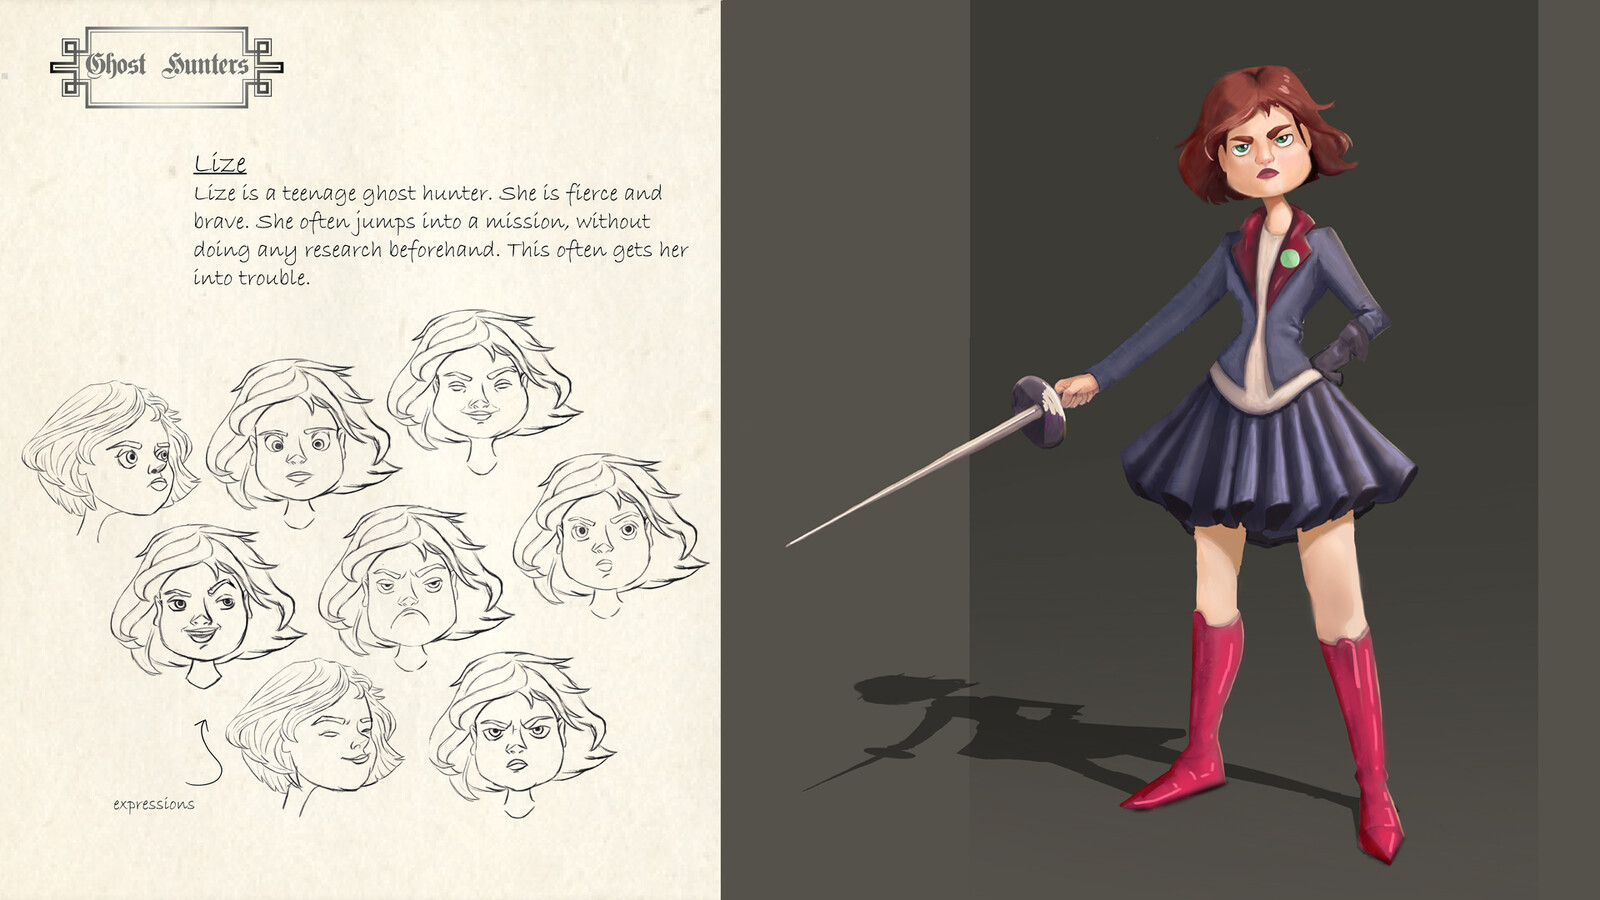 Lize, character design